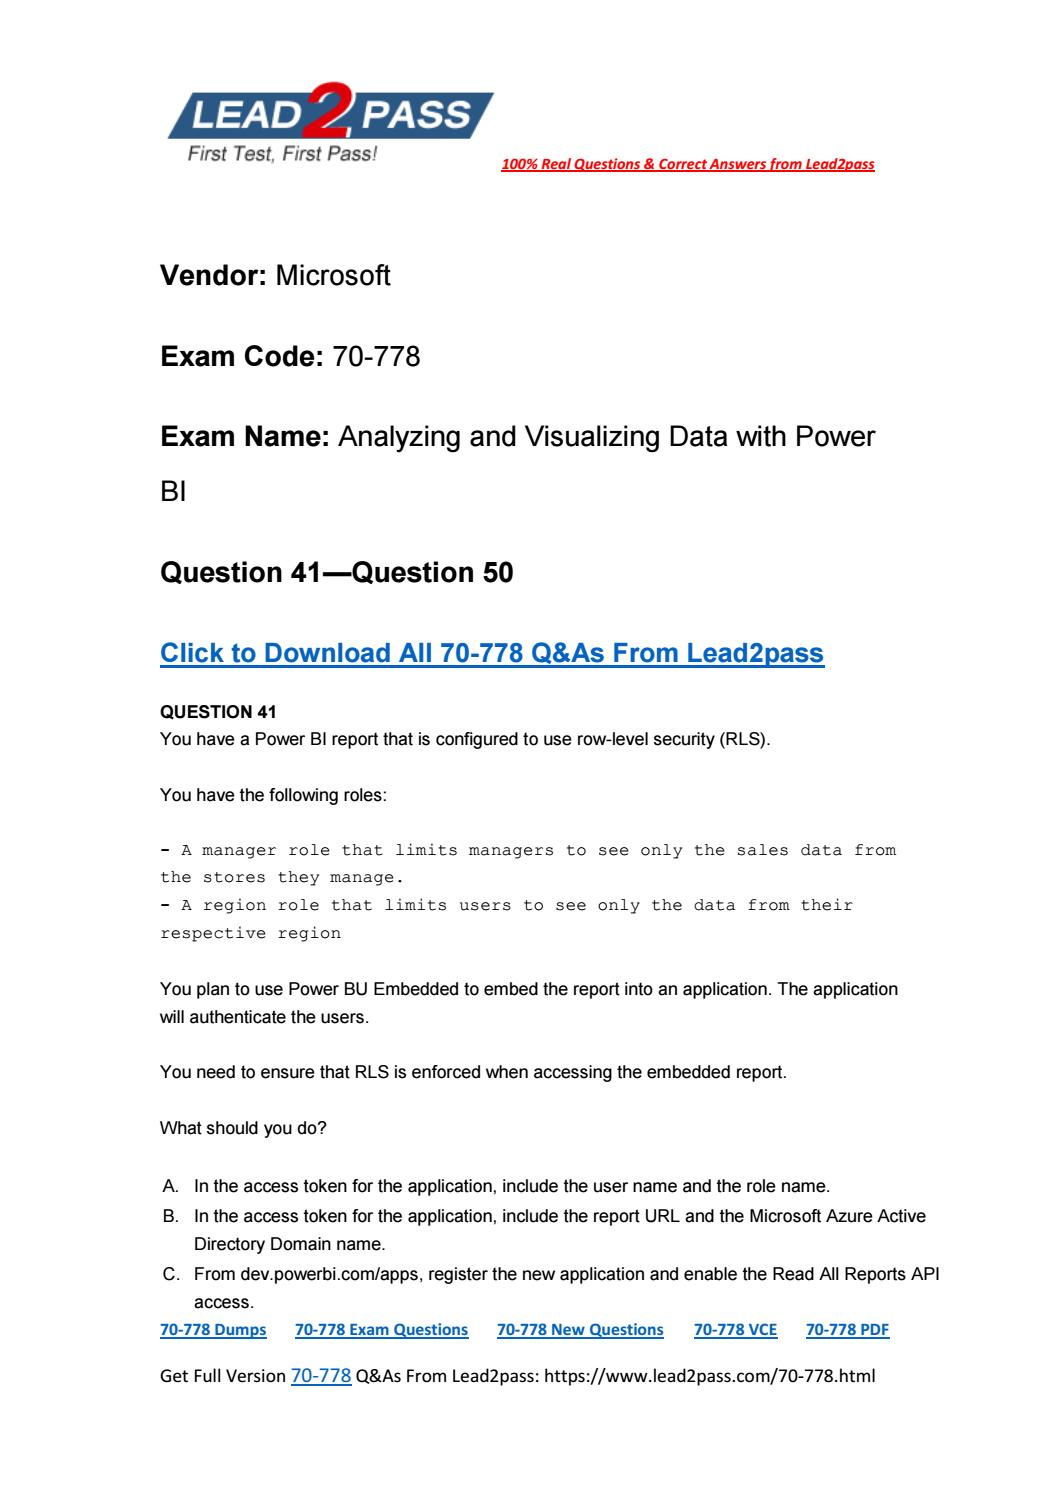 fe exam questions and answers pdf